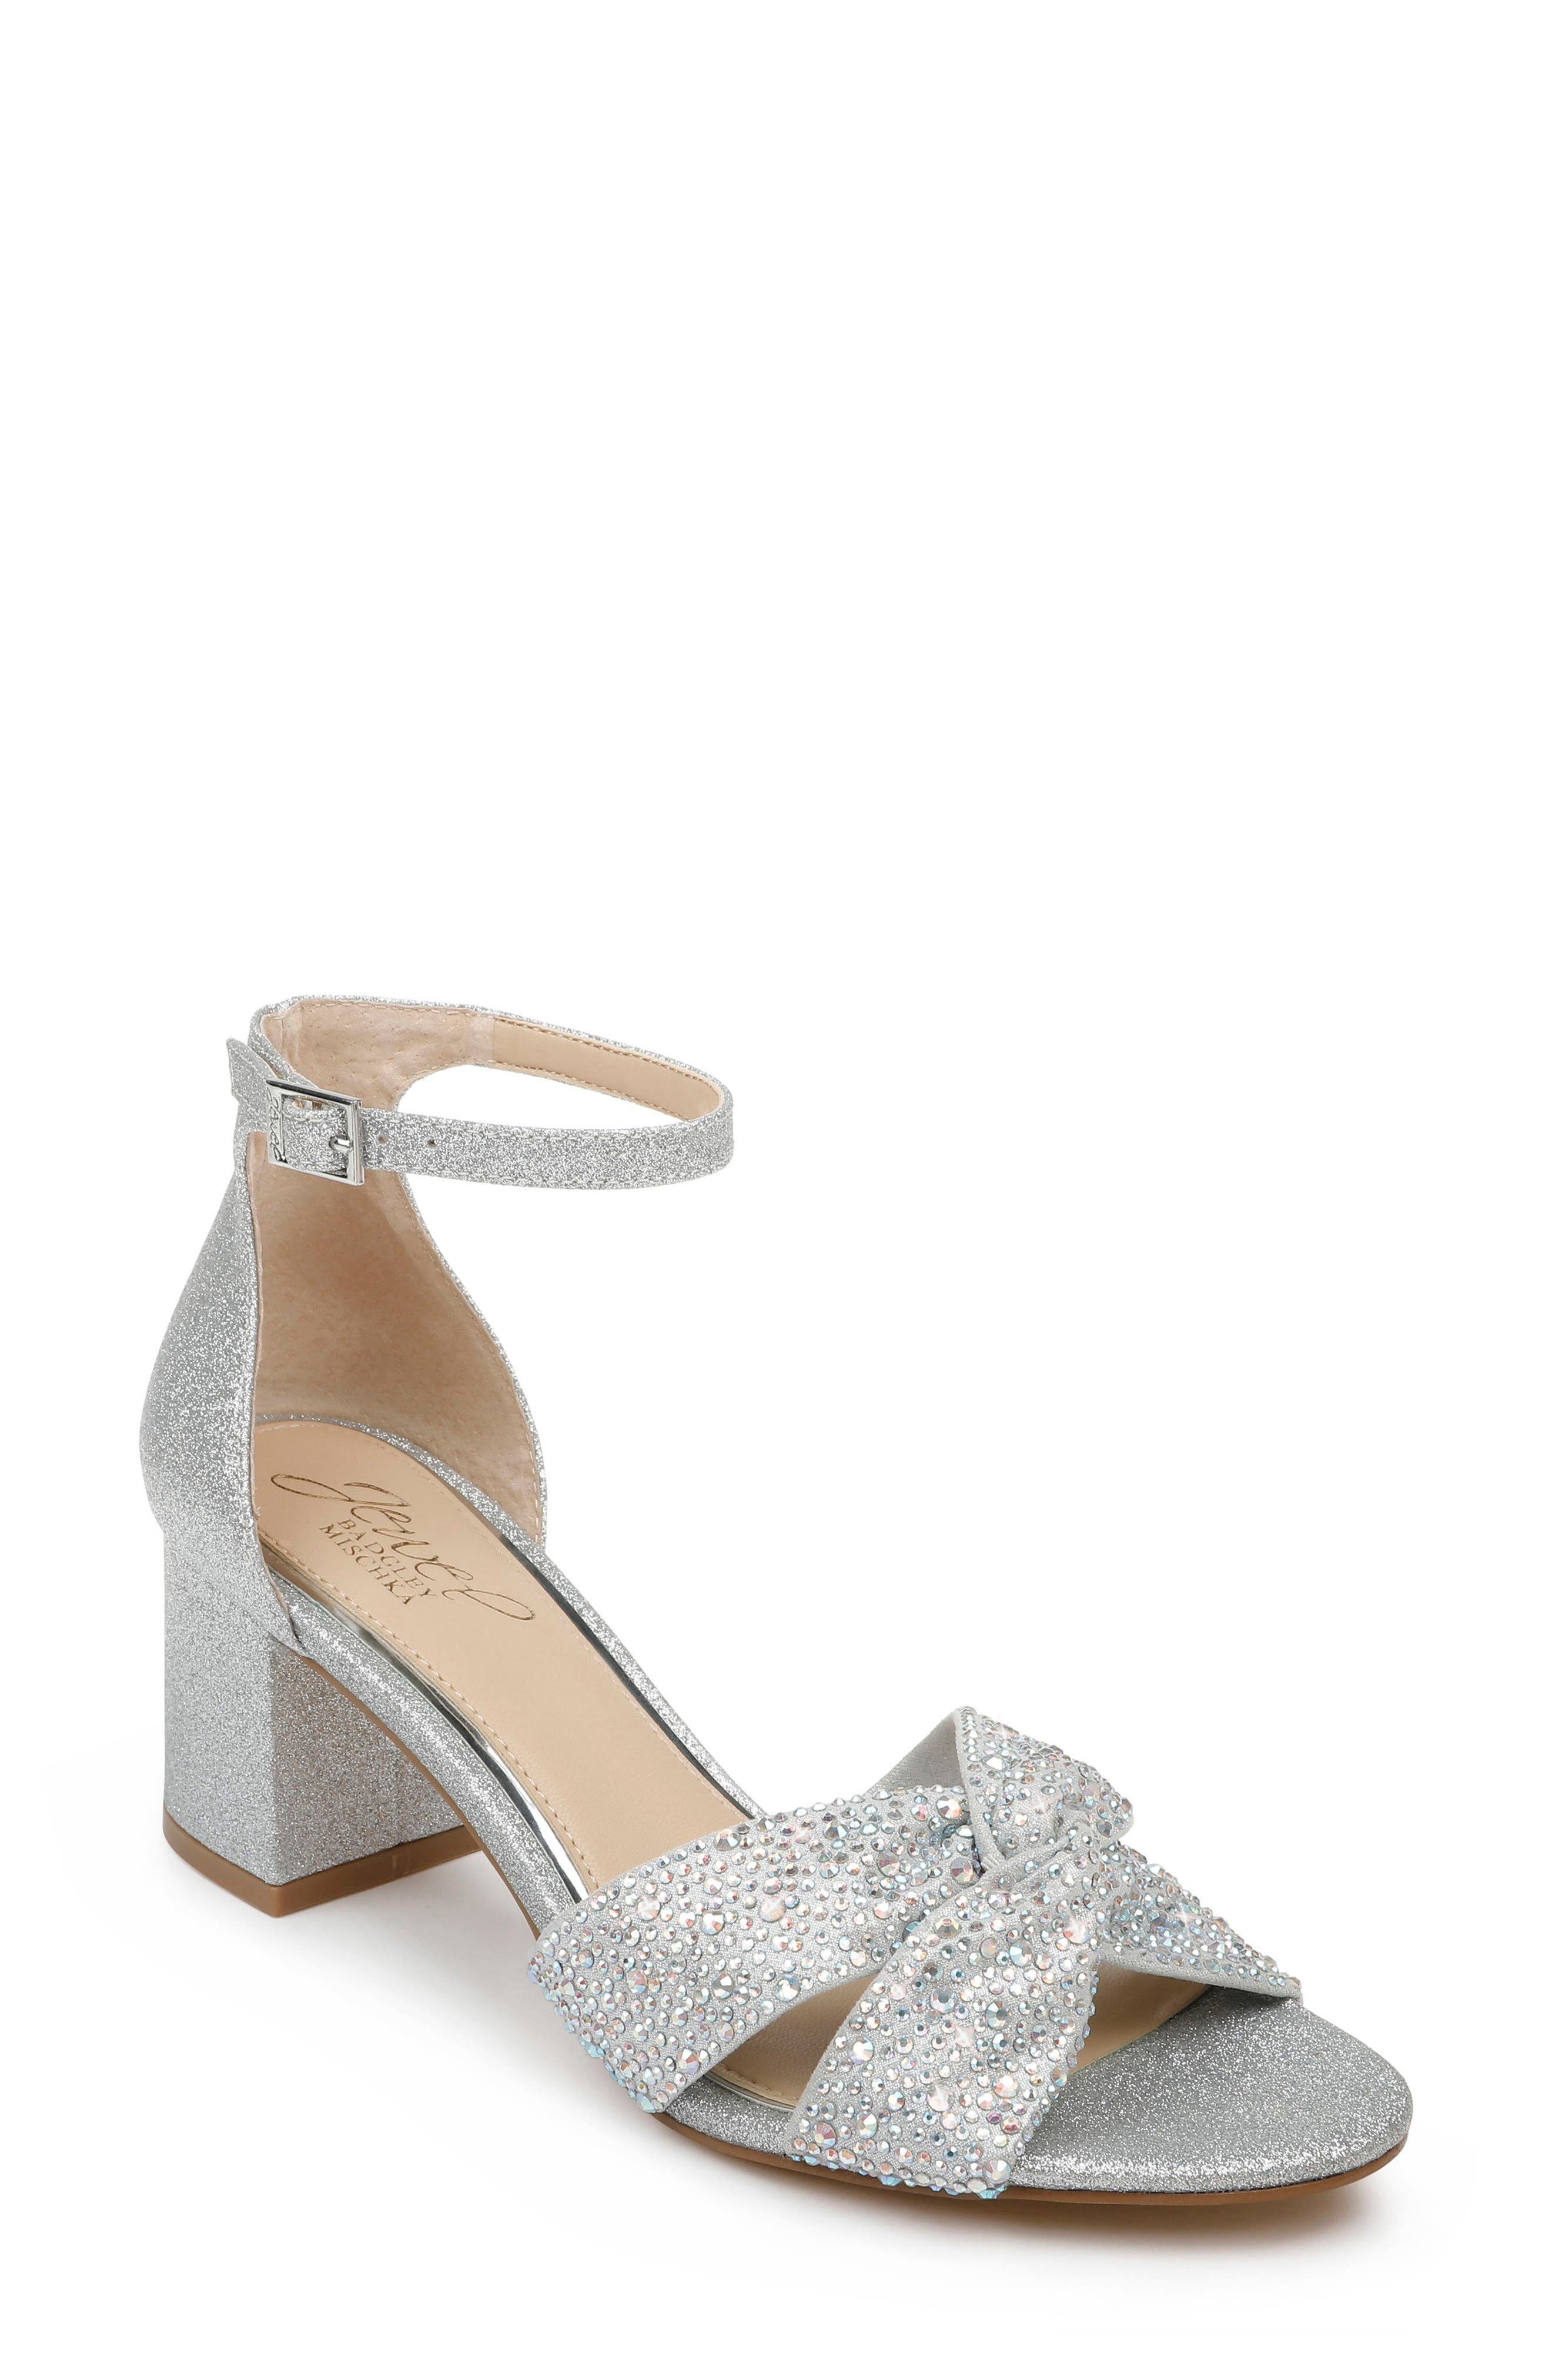 Glittering crystals illuminate the softly knotted straps of an event-ready, ankle-strap sandal set on a stable block heel. Style Name: Jewel Badgley Mischka Nicollete Embellished Sandal (Women). Style Number: 5998995 1. Available in stores.